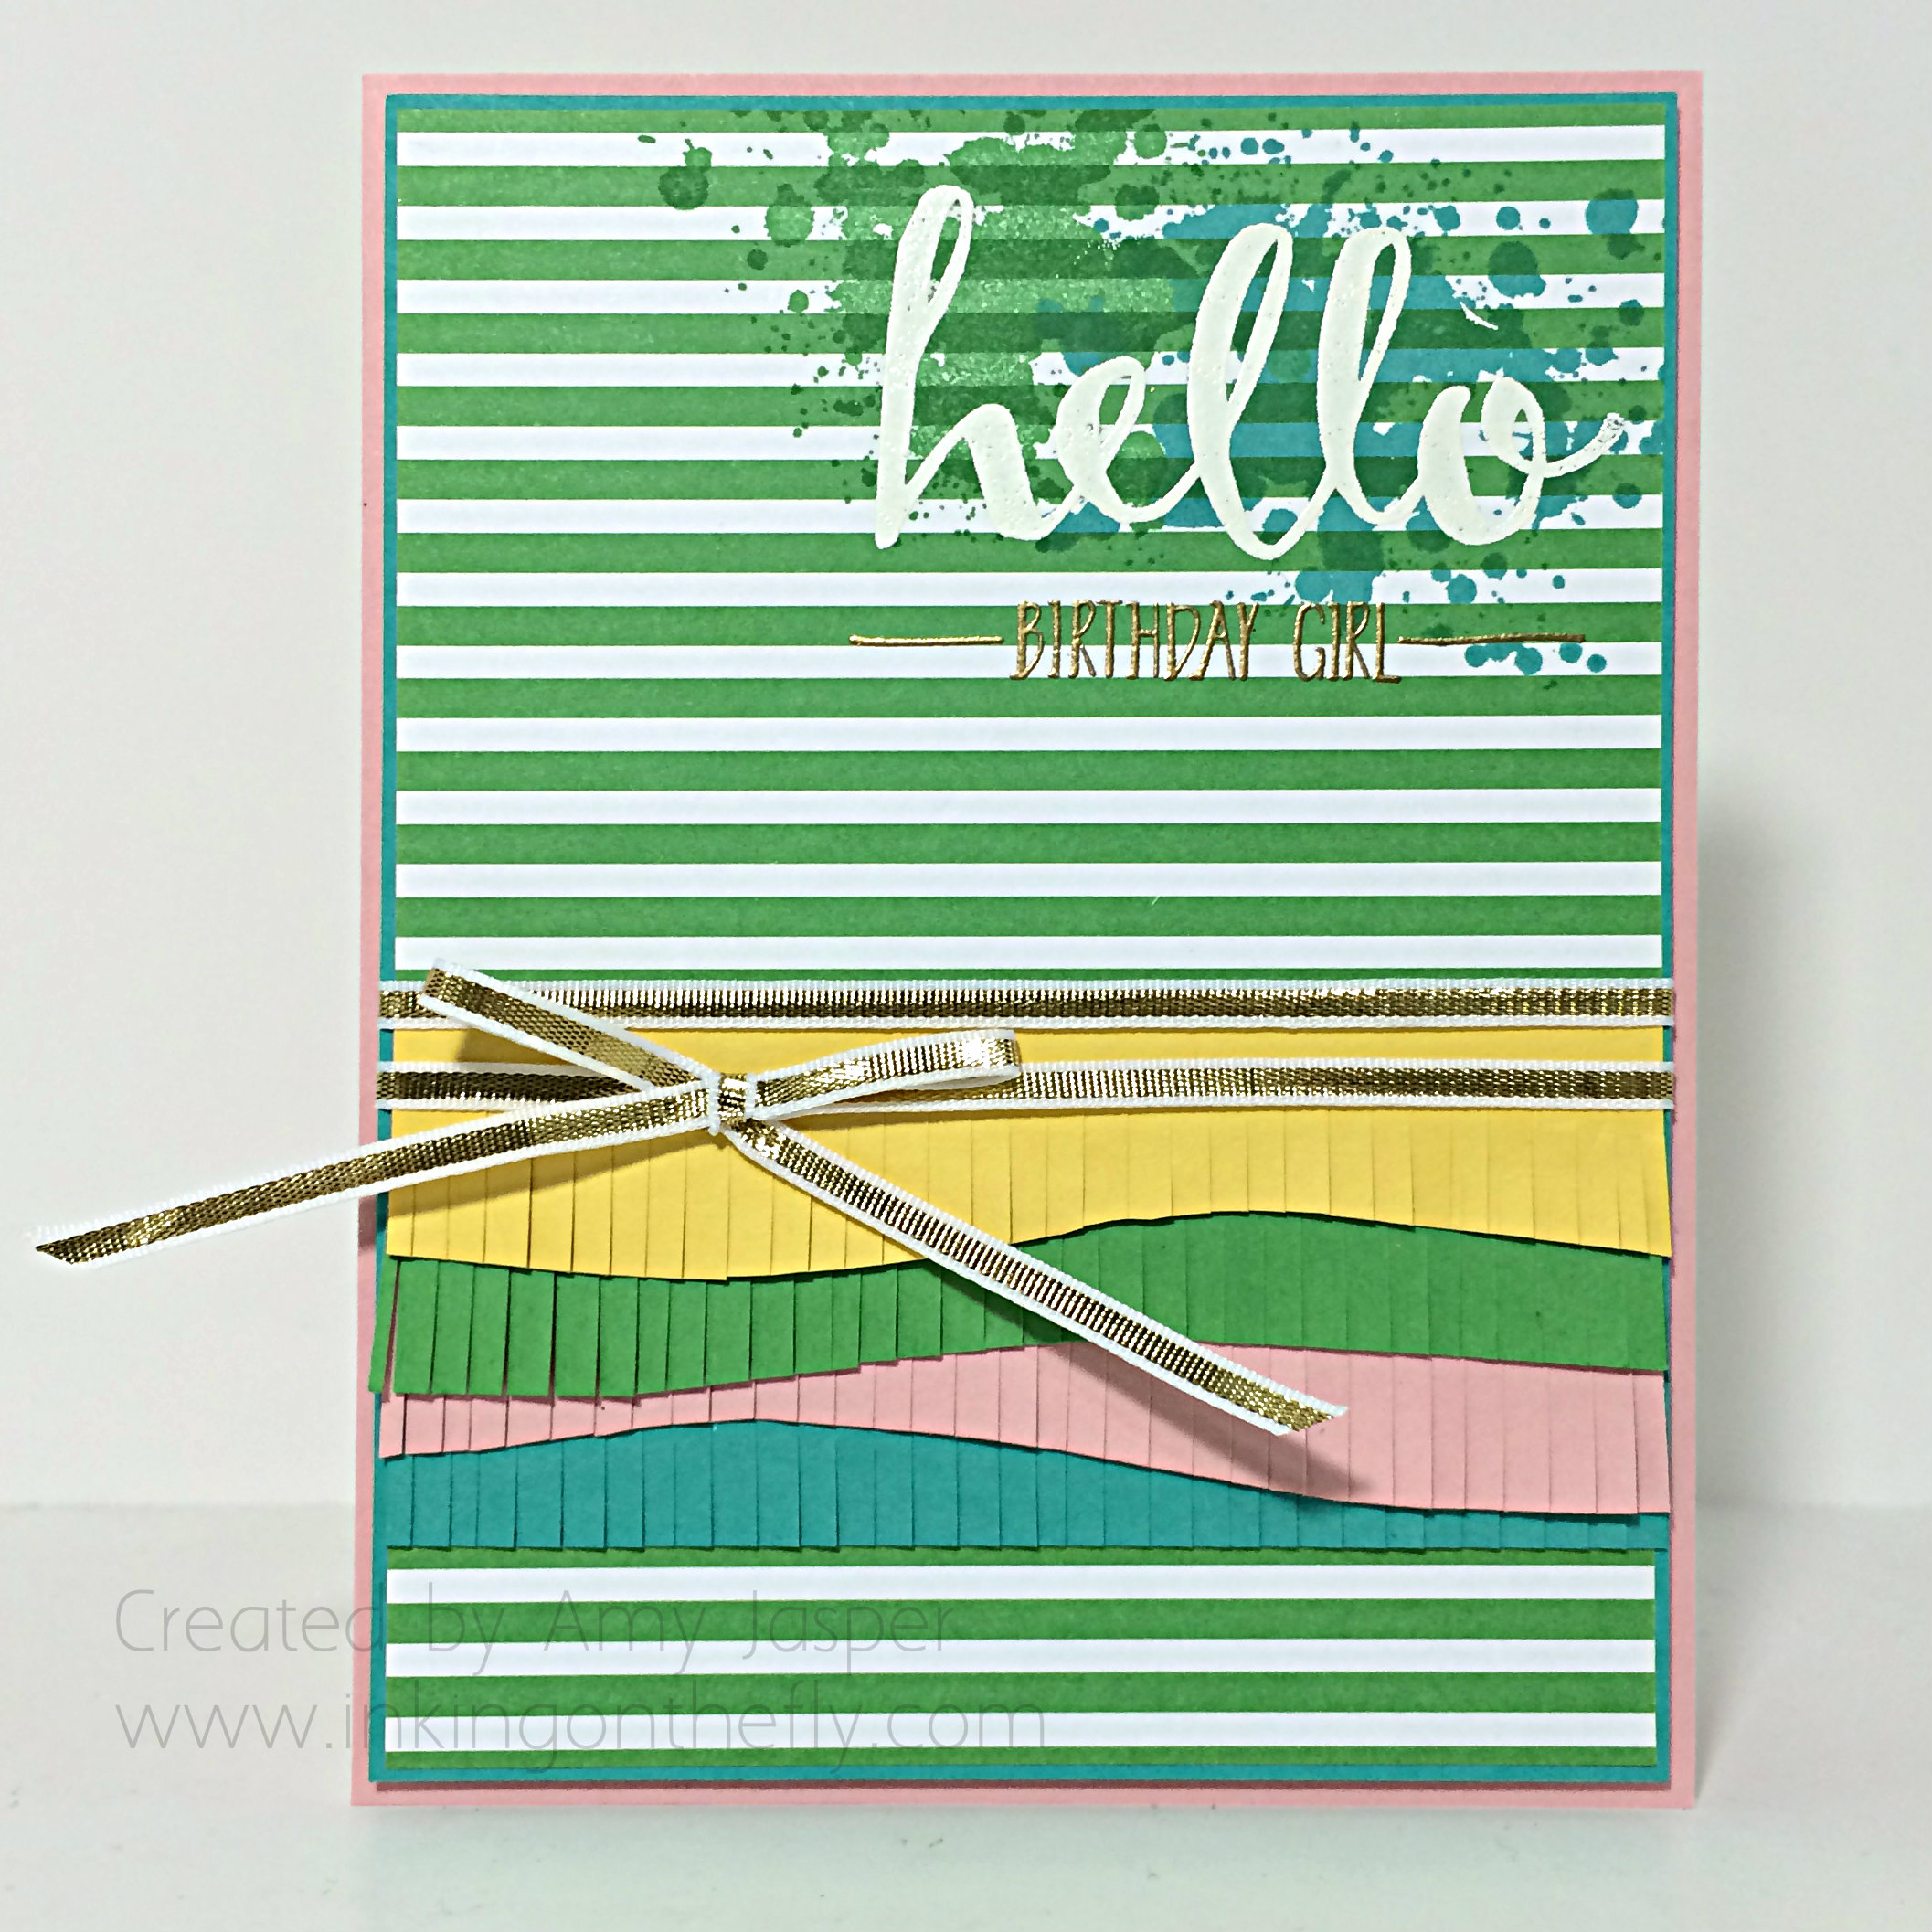 Hello (from the other side?) birthday card design by Amy Jasper at www.inkingonthefly.com